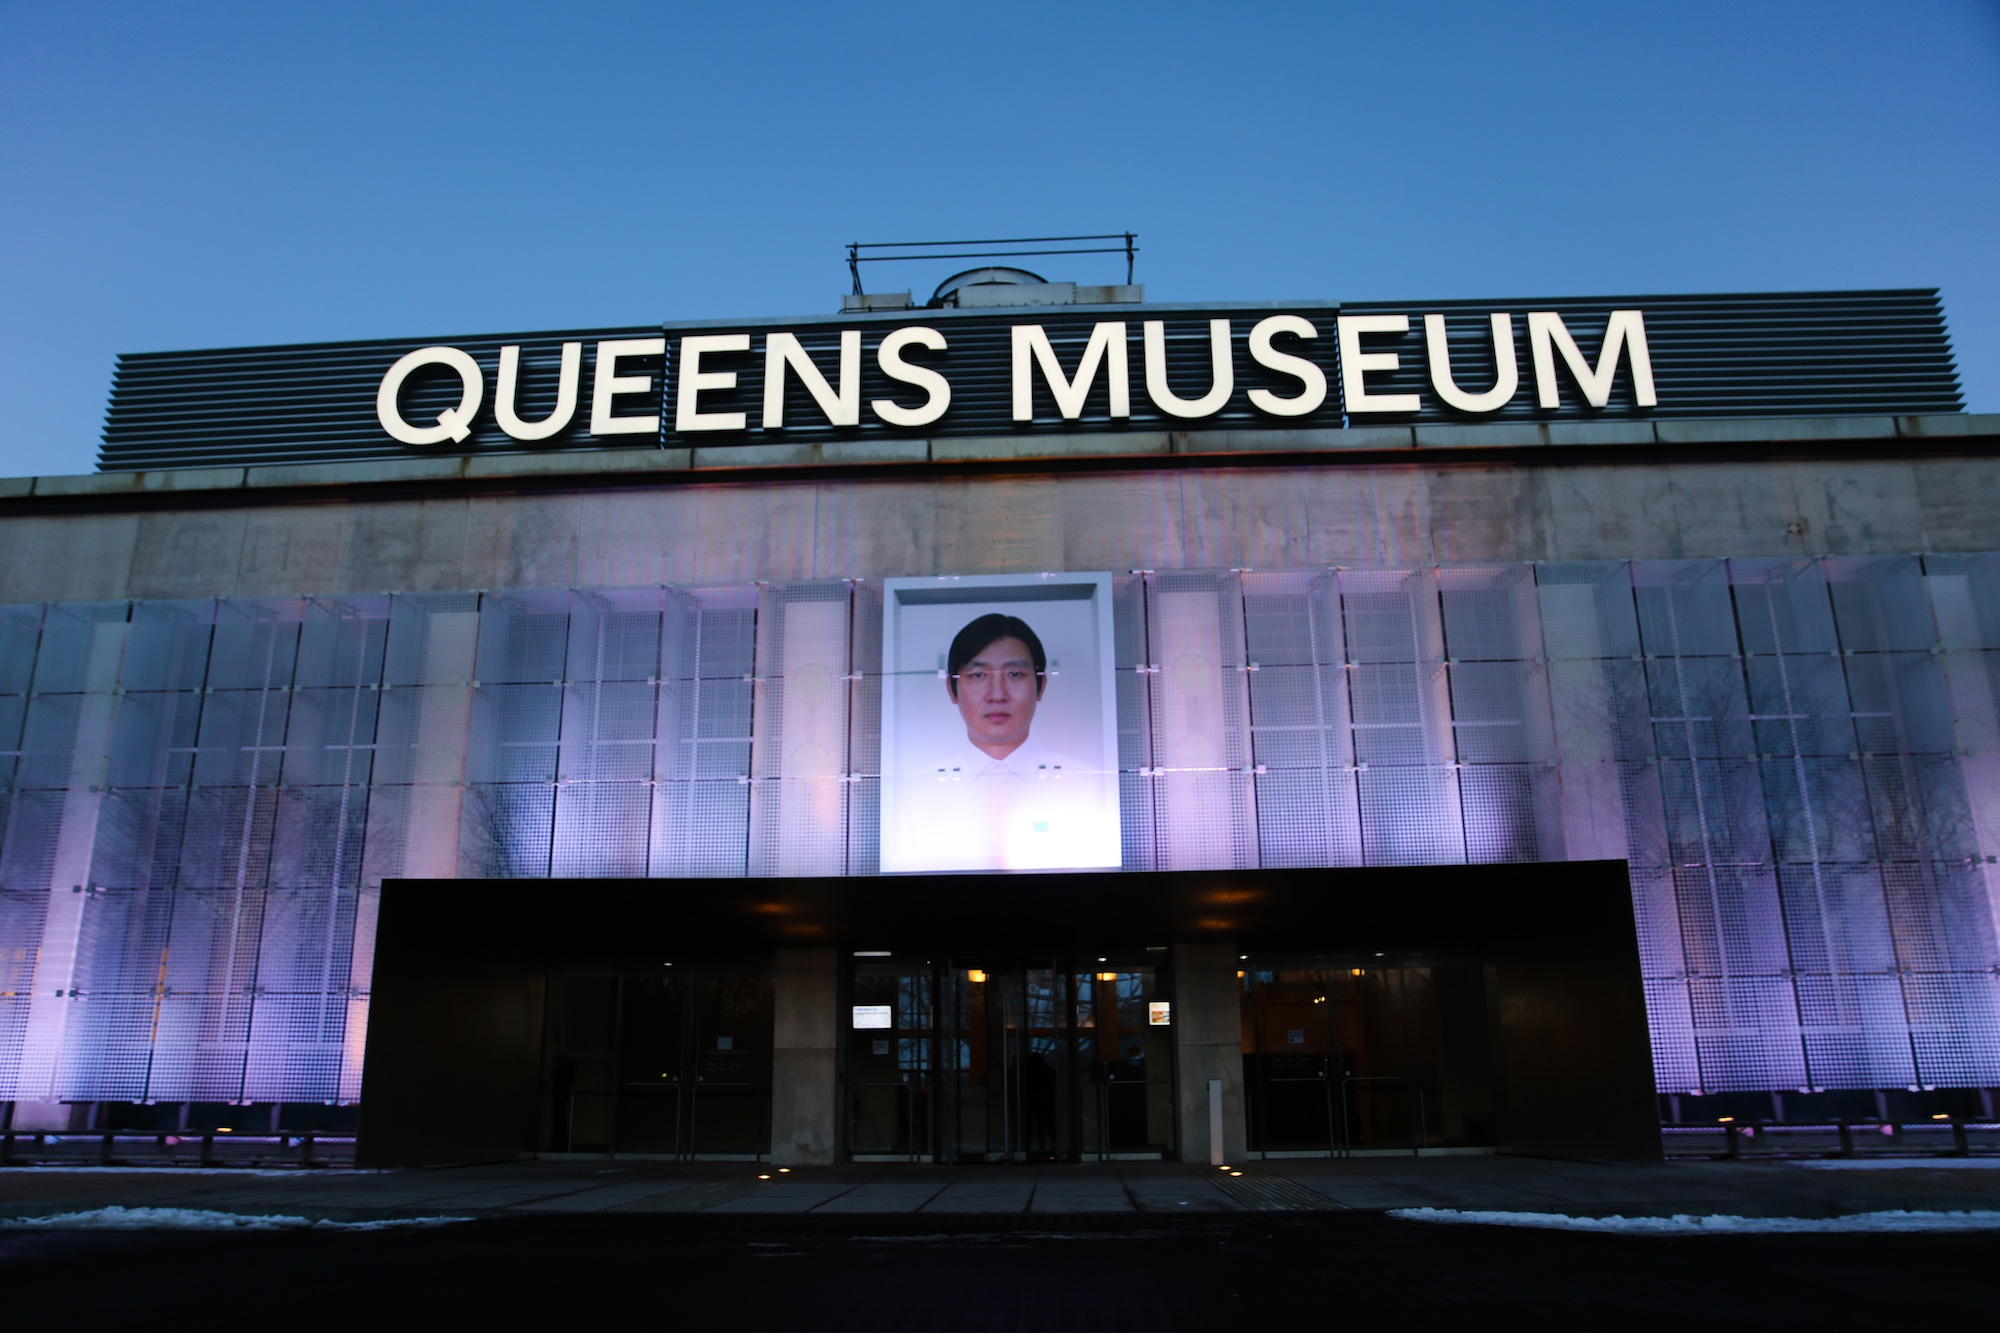 Red Hook Flicks New York City, OAK BLOG » WHAT I DID THIS WEEKEND: QUEENS MUSEUM